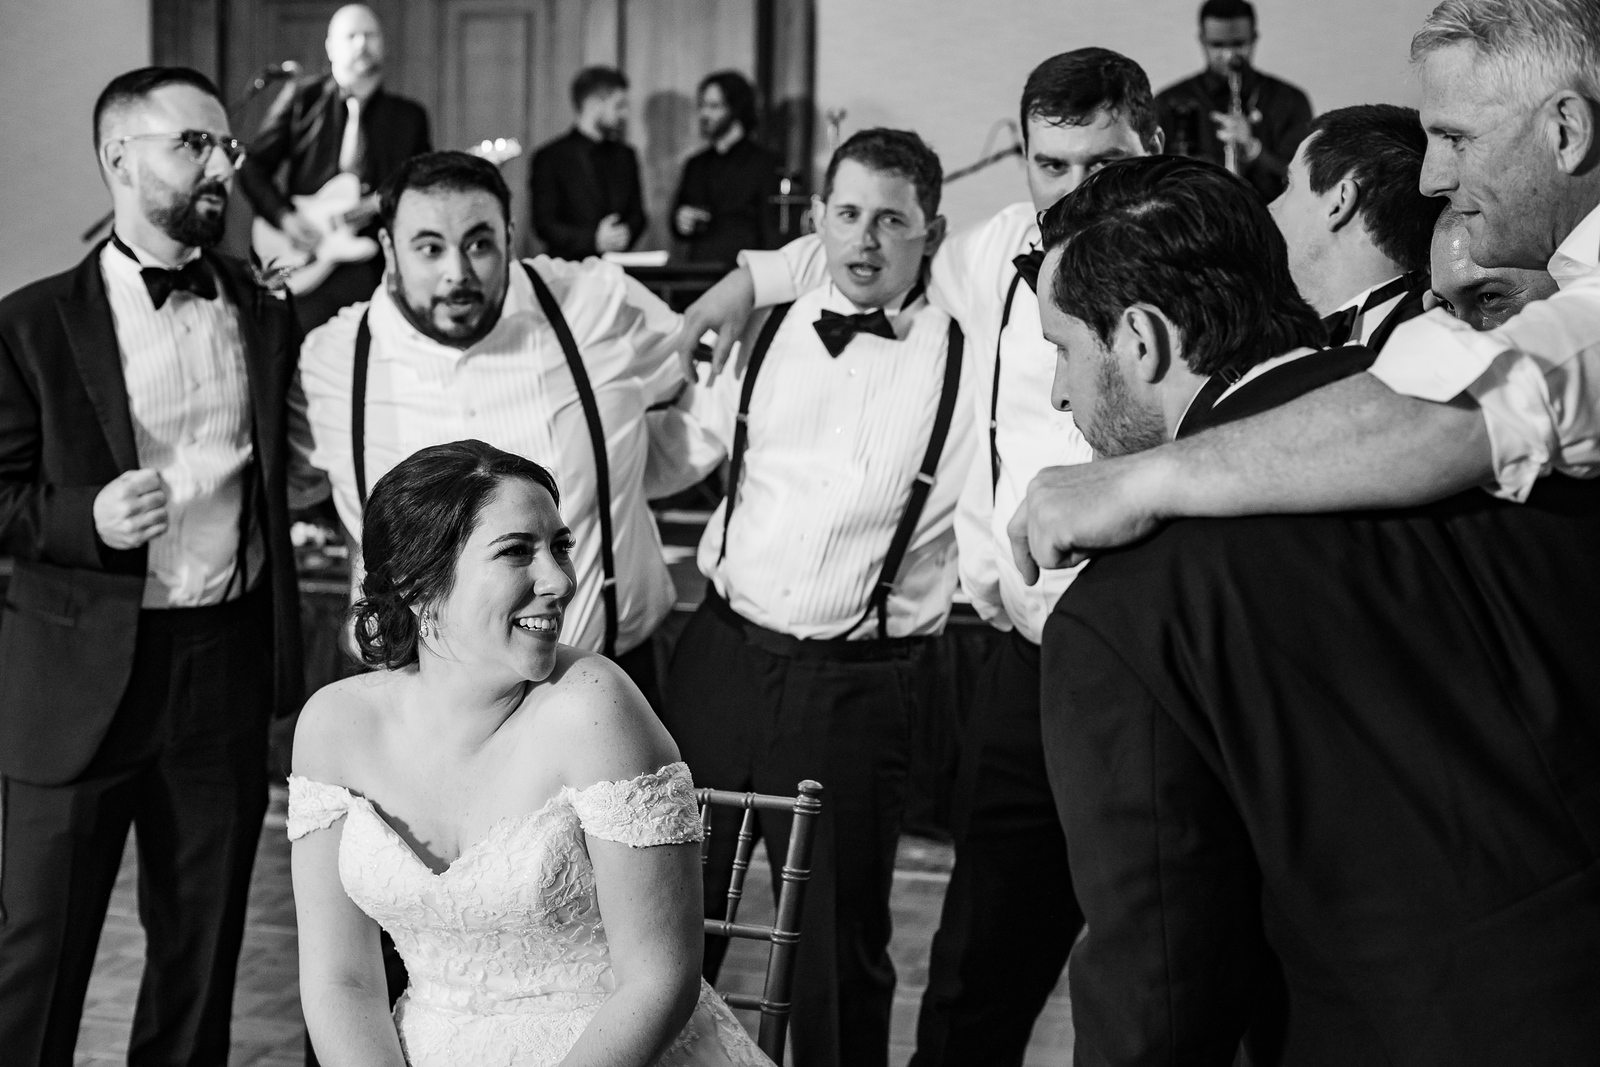 groomsman locking arms in a circle around the bride and singing to her